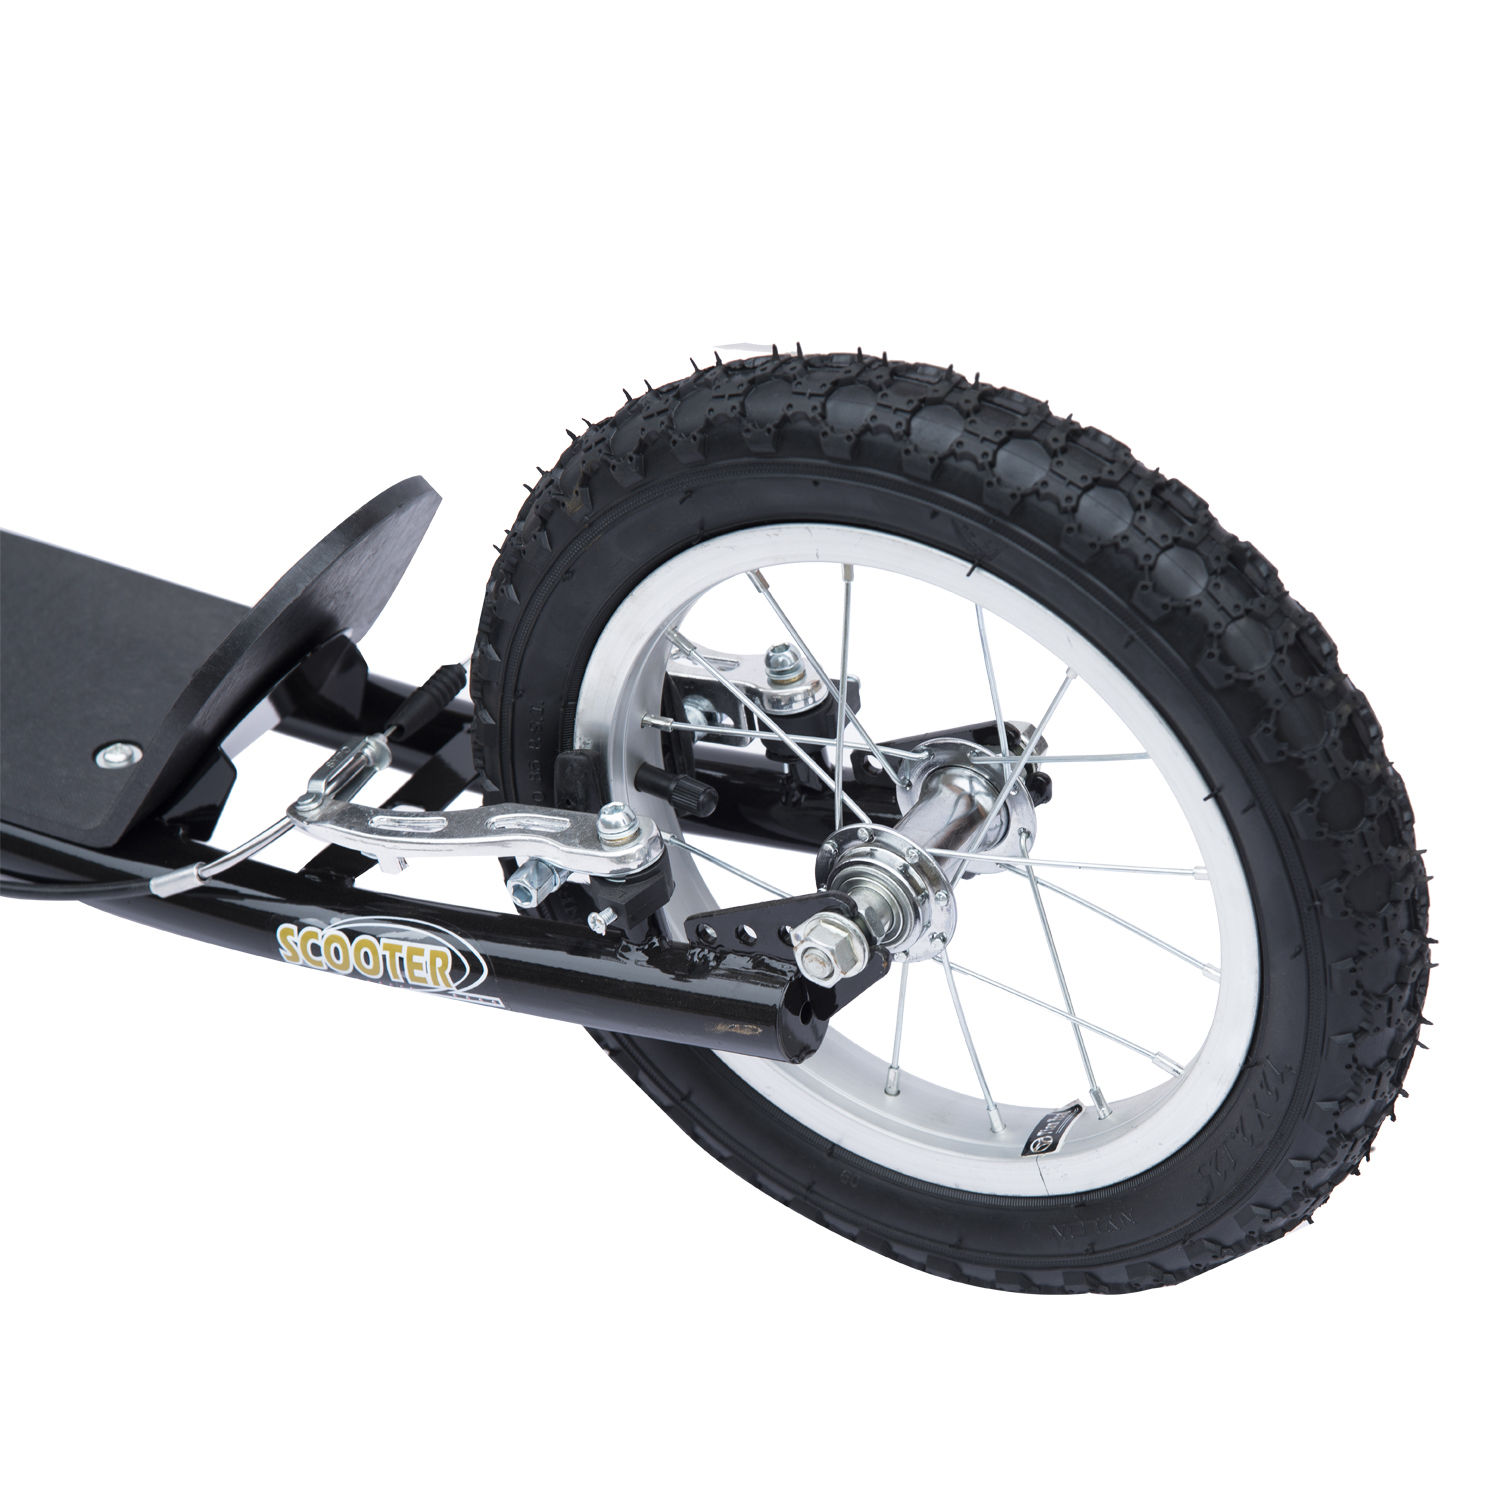 Adult-Teen-Push-Stunt-Kick-Scooter-Kids-Children-Bike-Bicycle-Ride-Street-New thumbnail 8